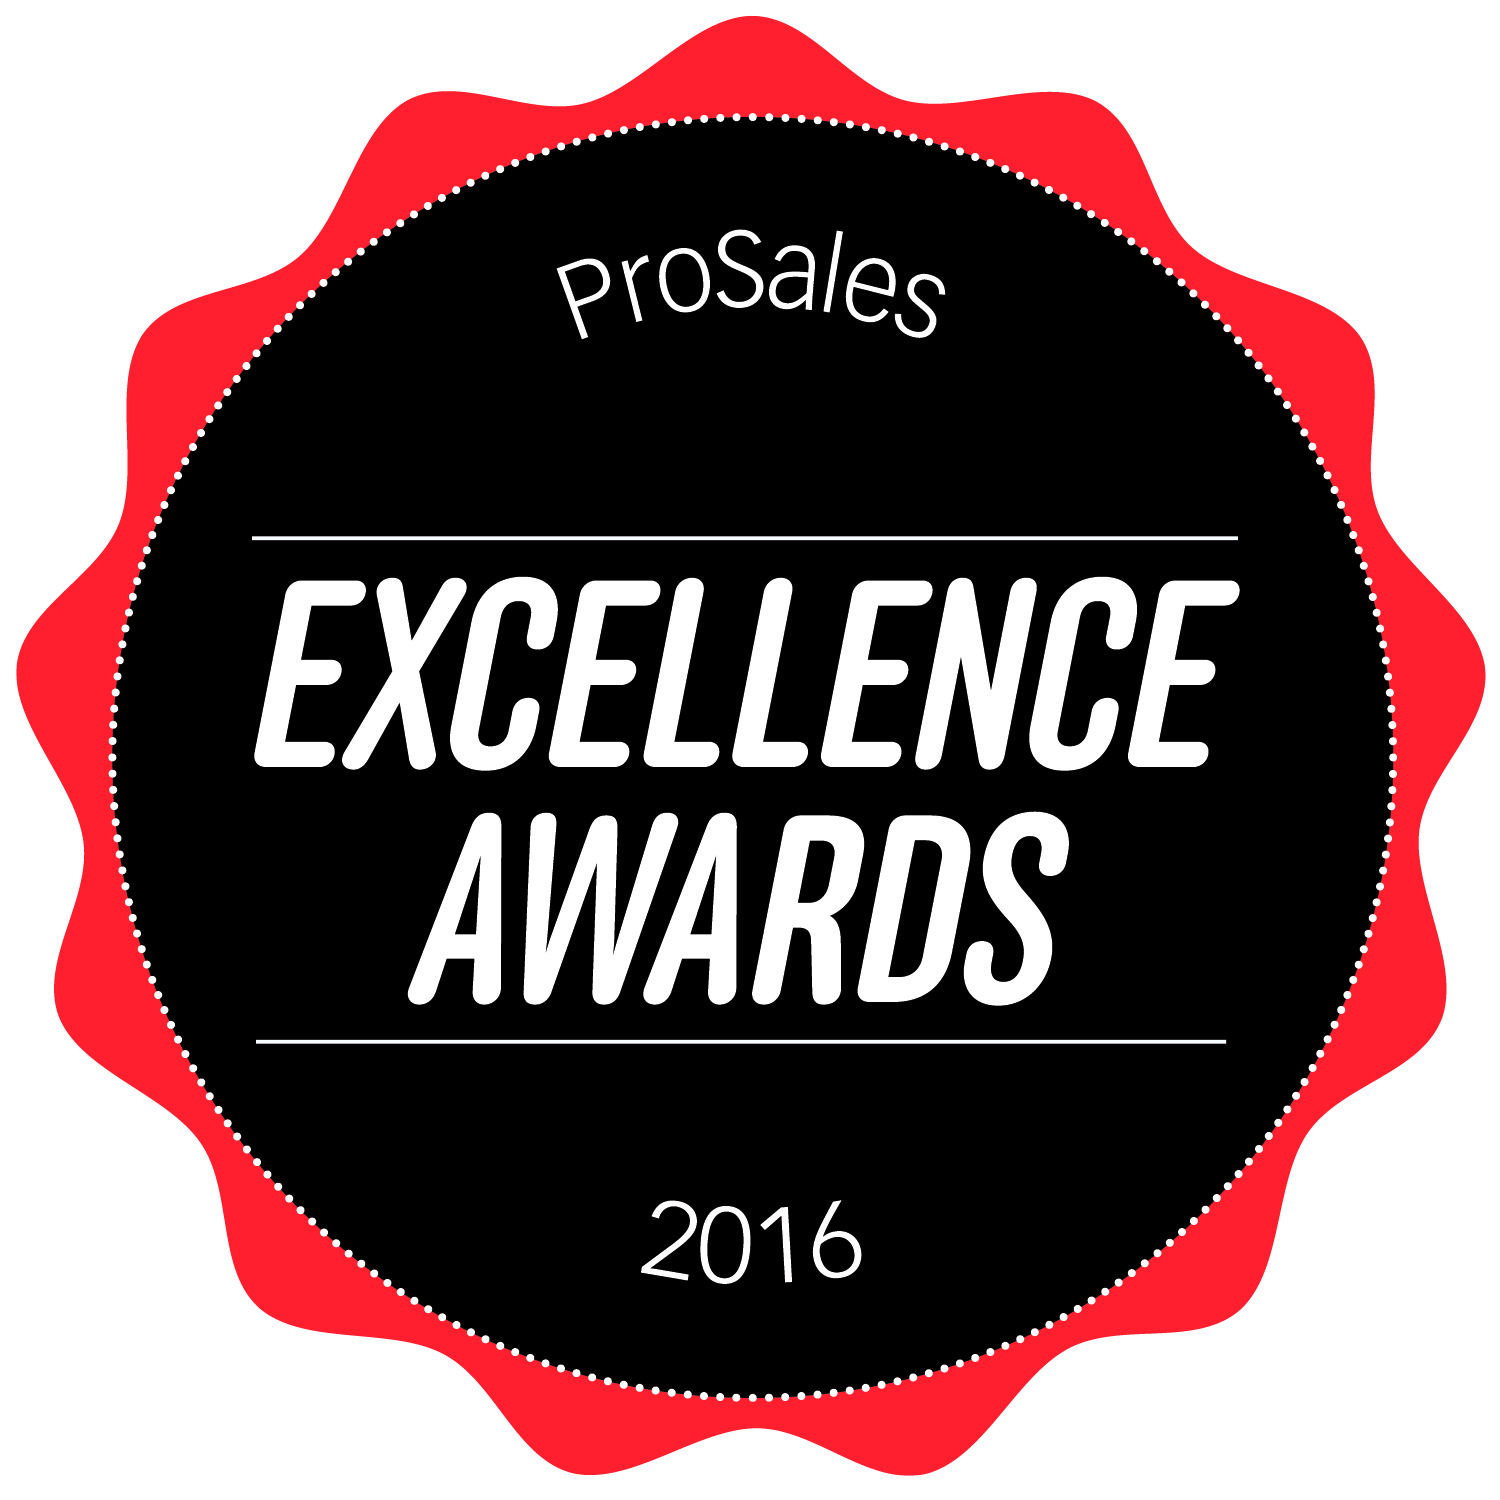 Introducing The 2016 Prosales Excellence Award Winners